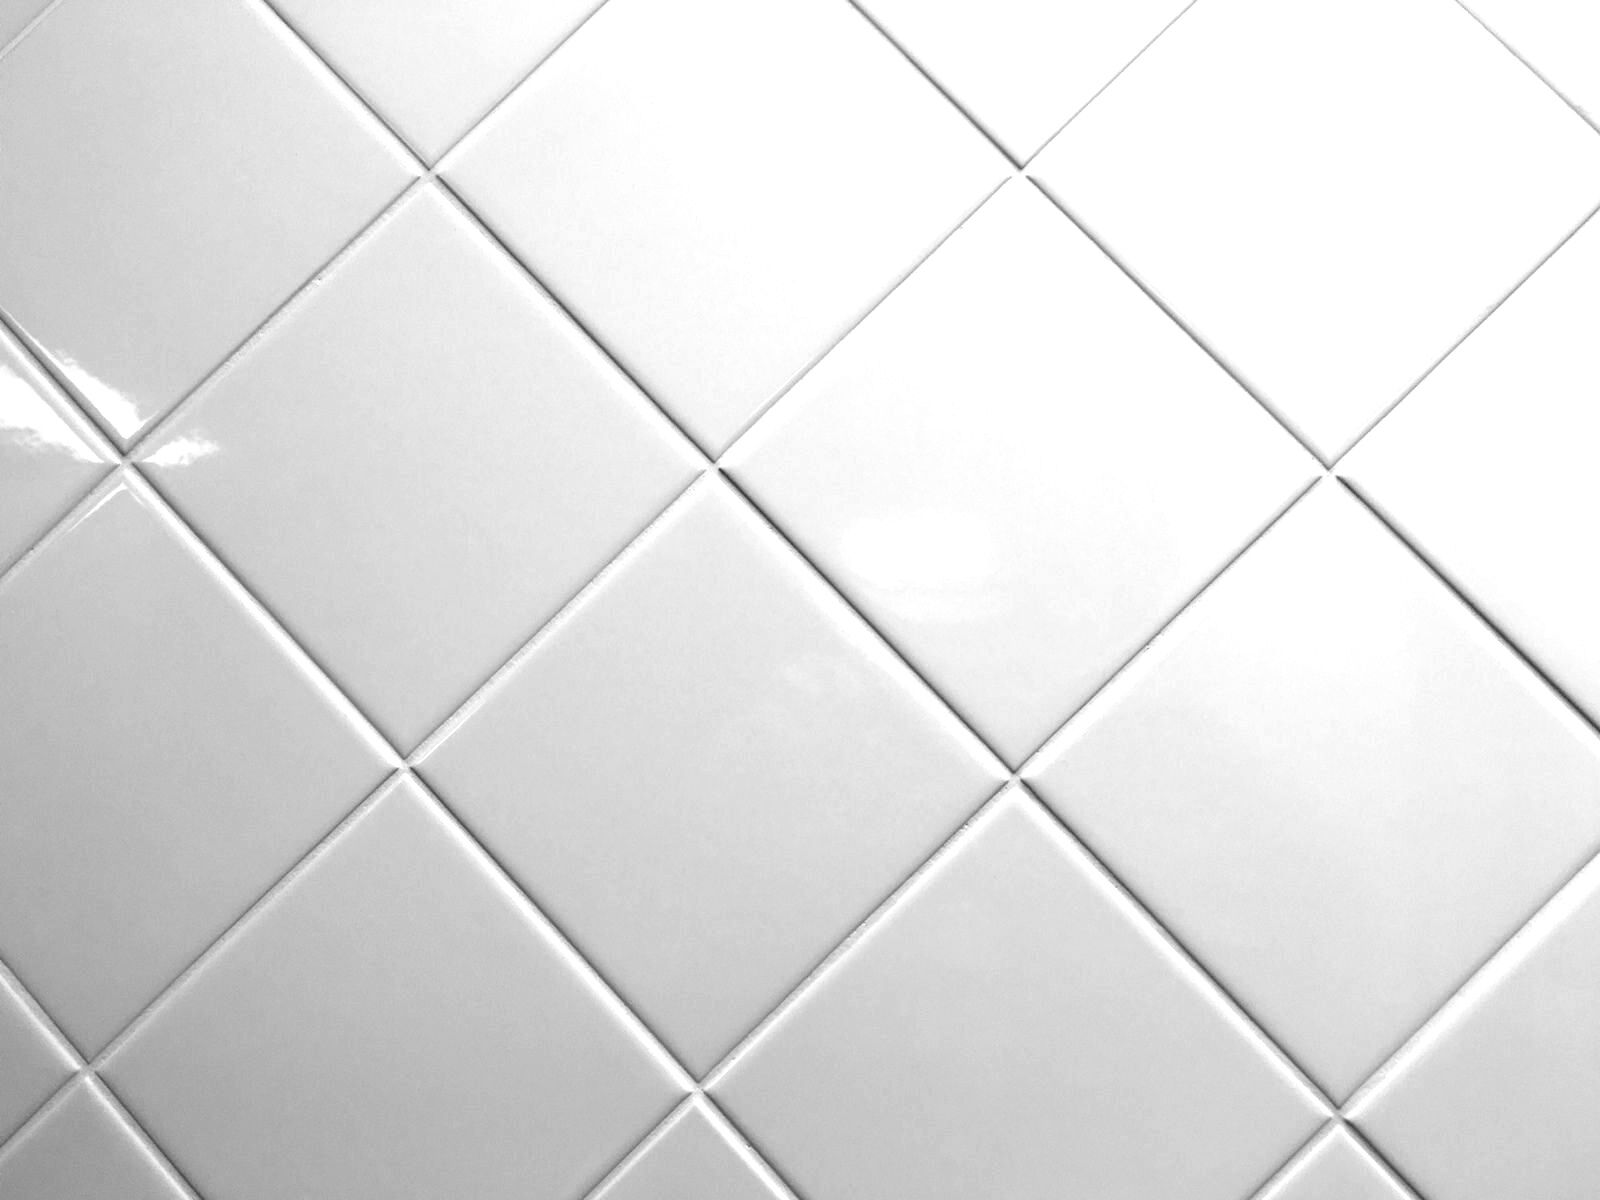 WHITE X SHINY Glossy Finish Ceramic Tile Backsplash Wall Floor - 4x4 white tile with gold specks